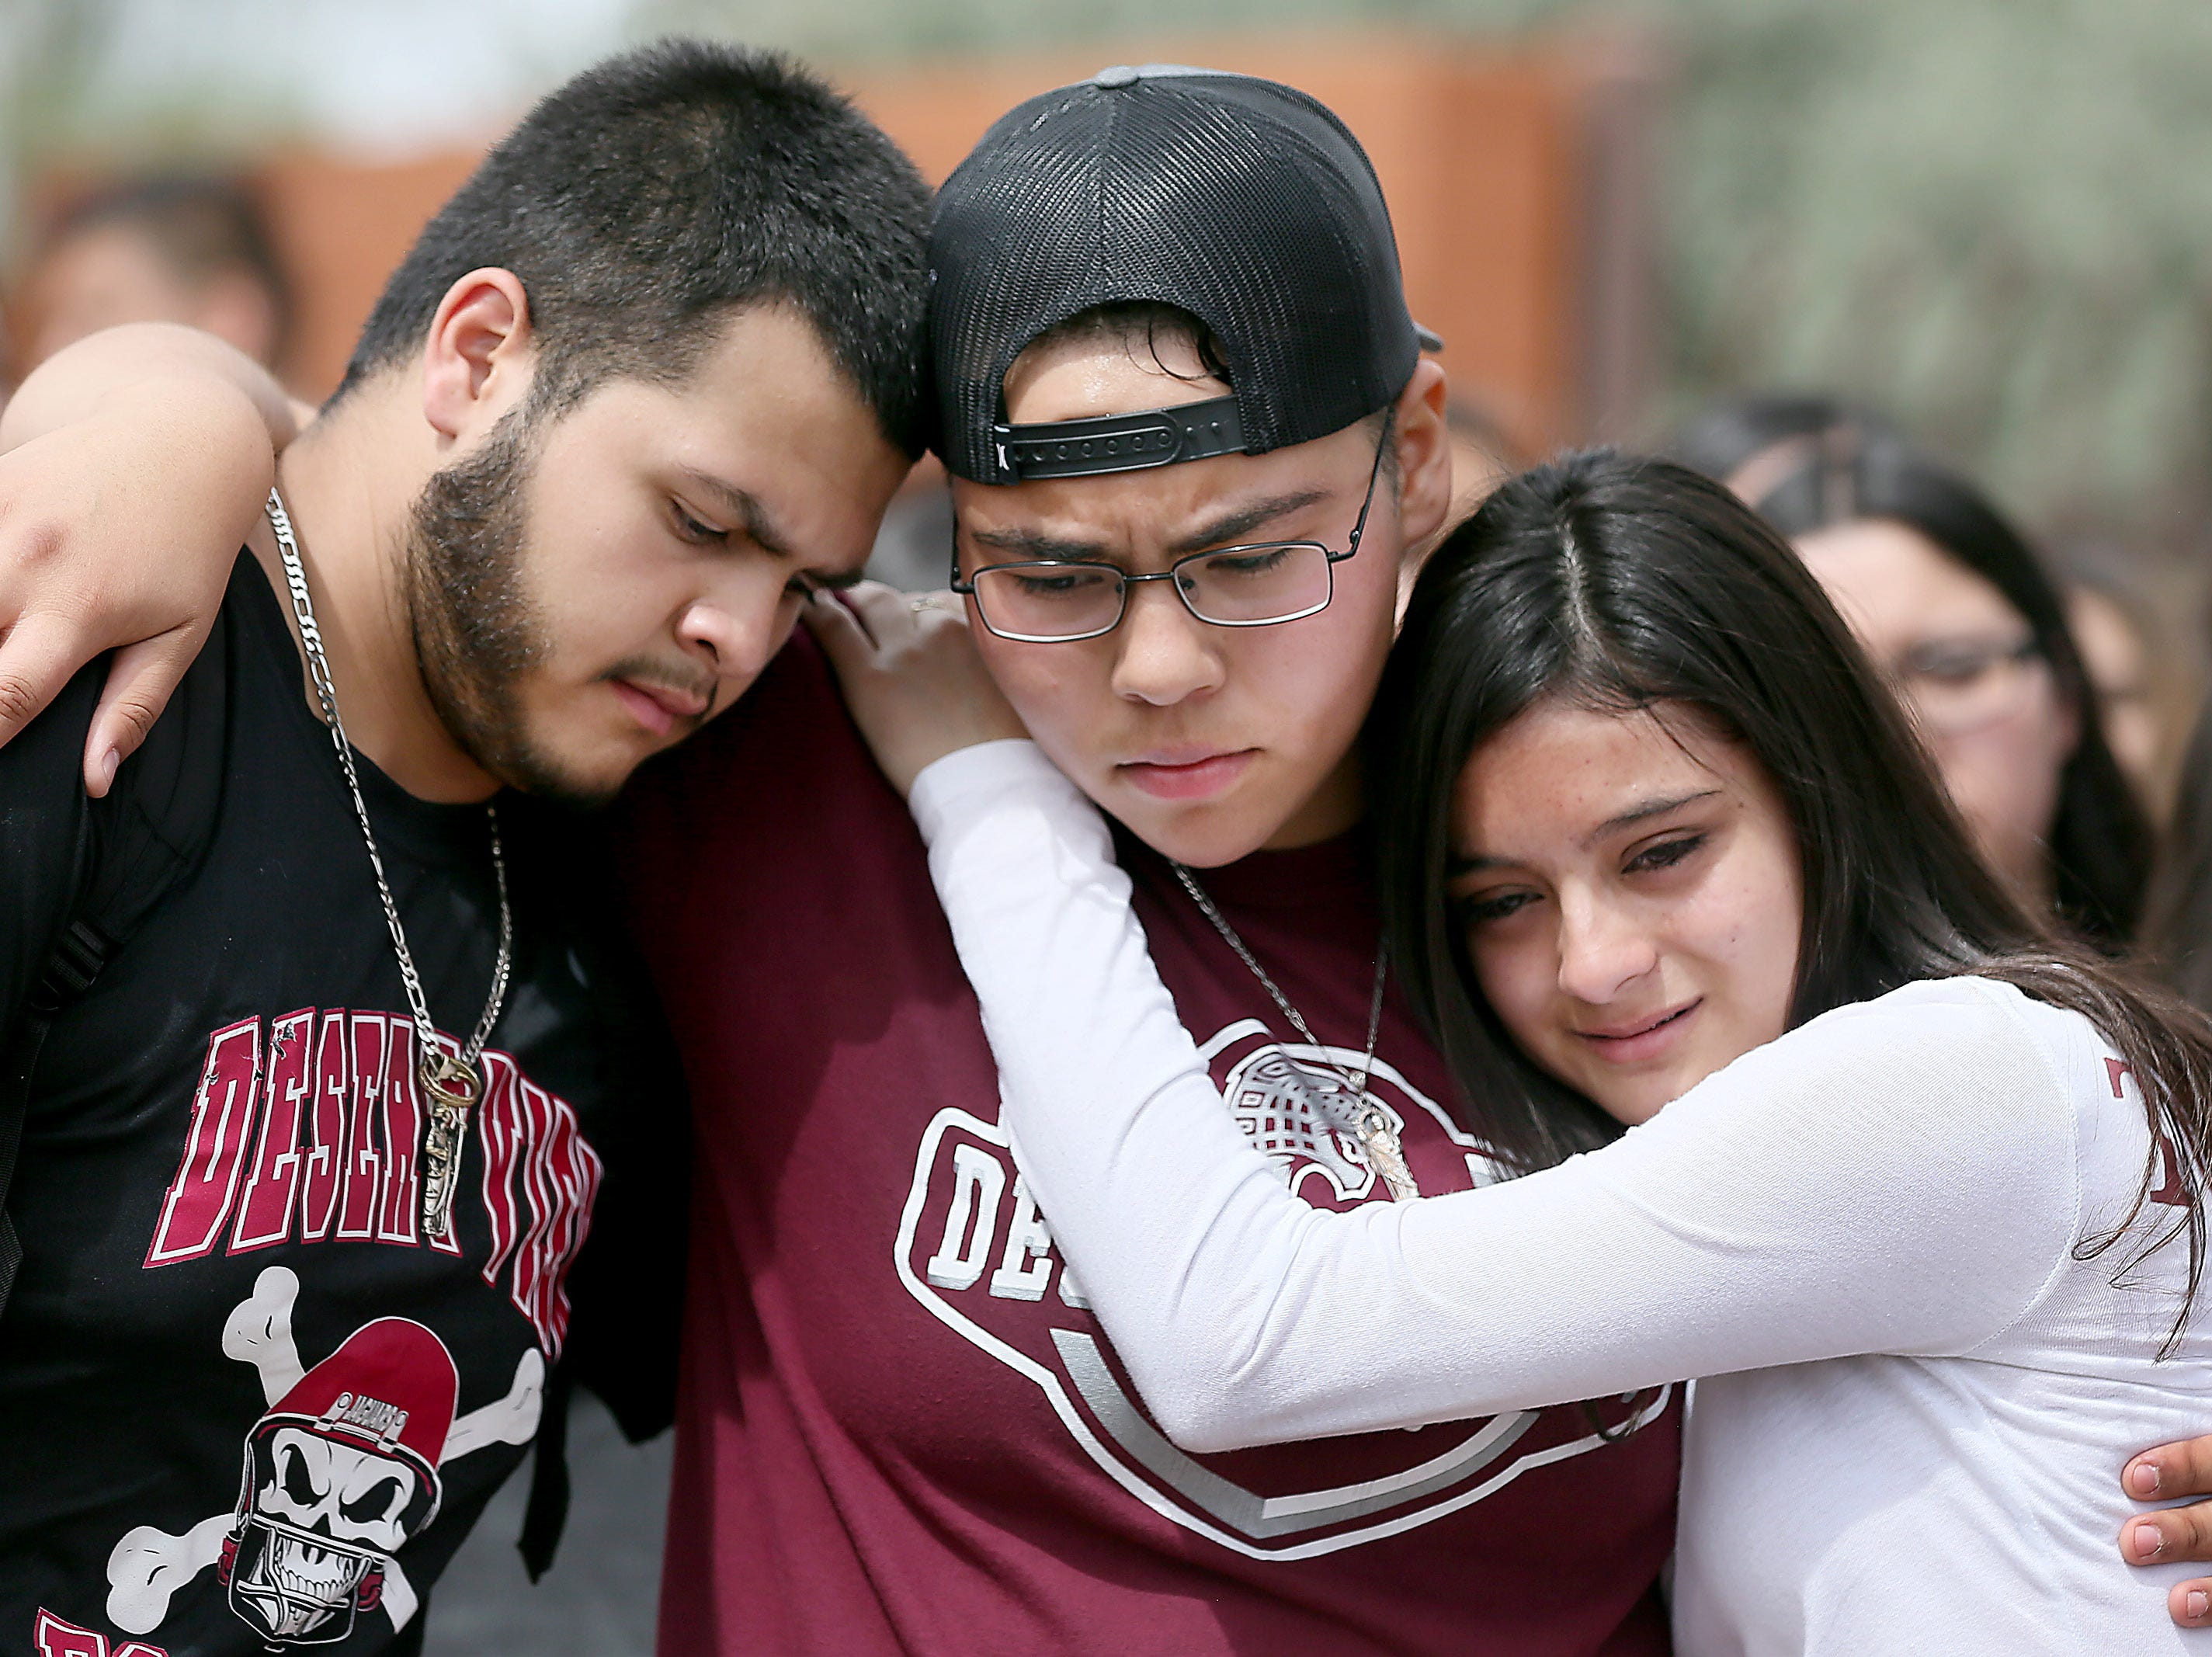 (From left to right) Marcell Ibarra, 18, Daffne Anselmo, 16, and Jamilet Fragoso, 16, comfort each other after talking about their close friend Thomas Torres, a Desert View High School student who was taken into custody by  Border Patrol after a traffic stop by a Pima County Sheriff's Department deputy on May 2 in Tucson, Ariz.